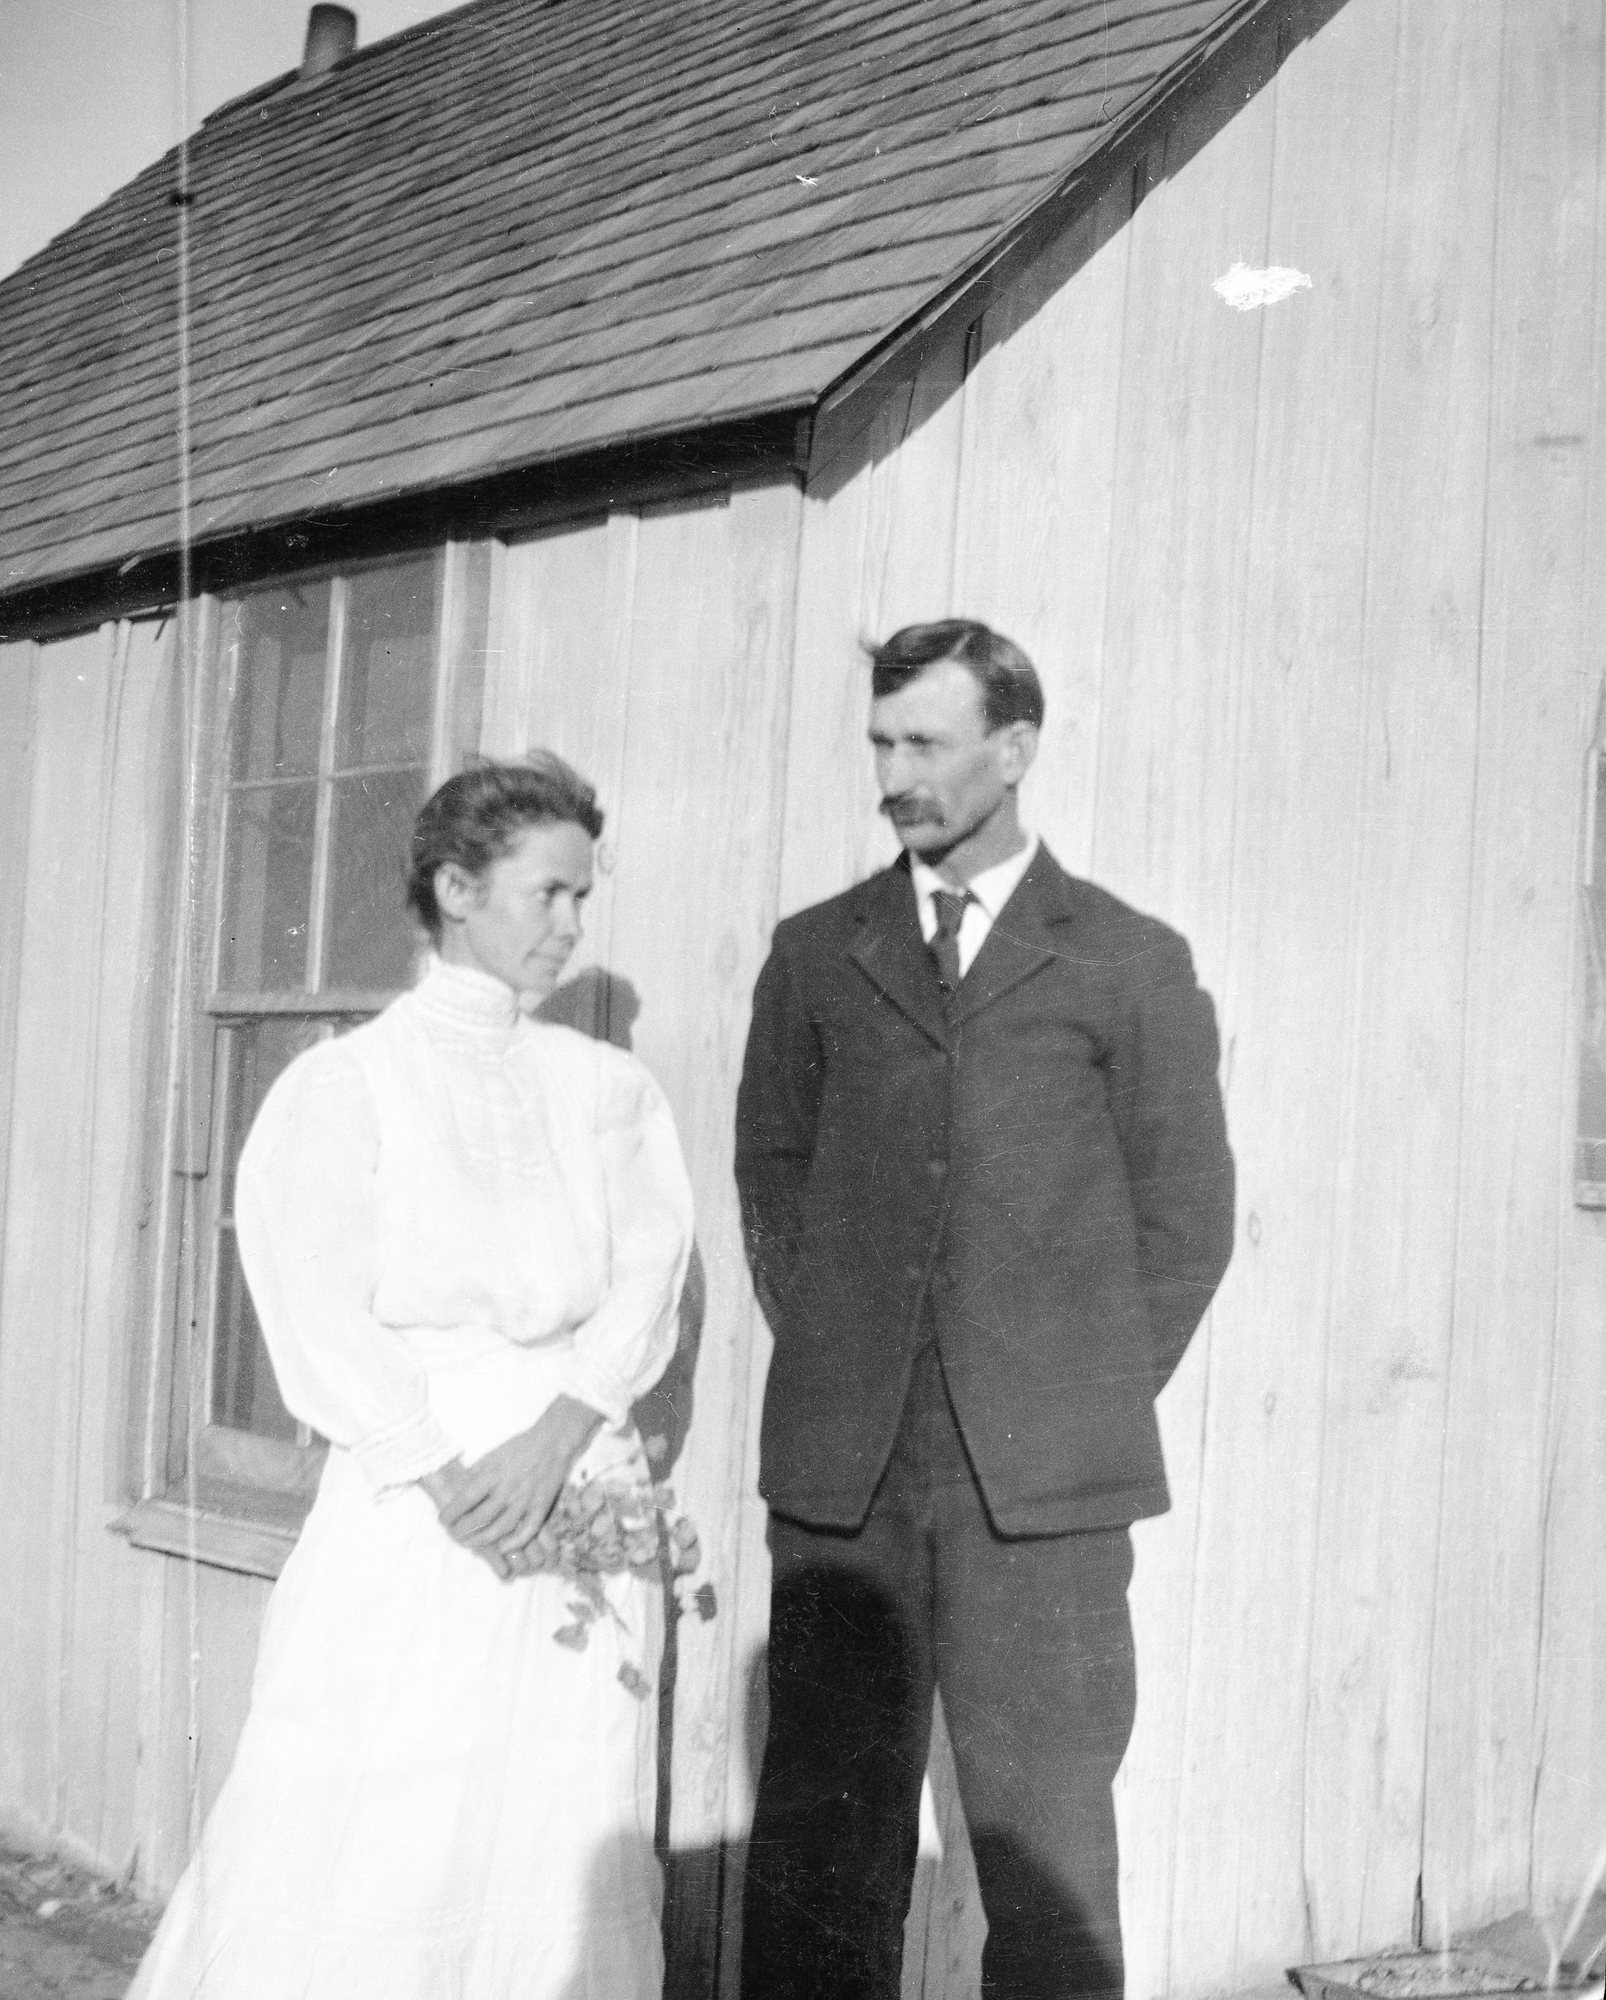 Caroline and Will Henderson on their wedding day, May 1908